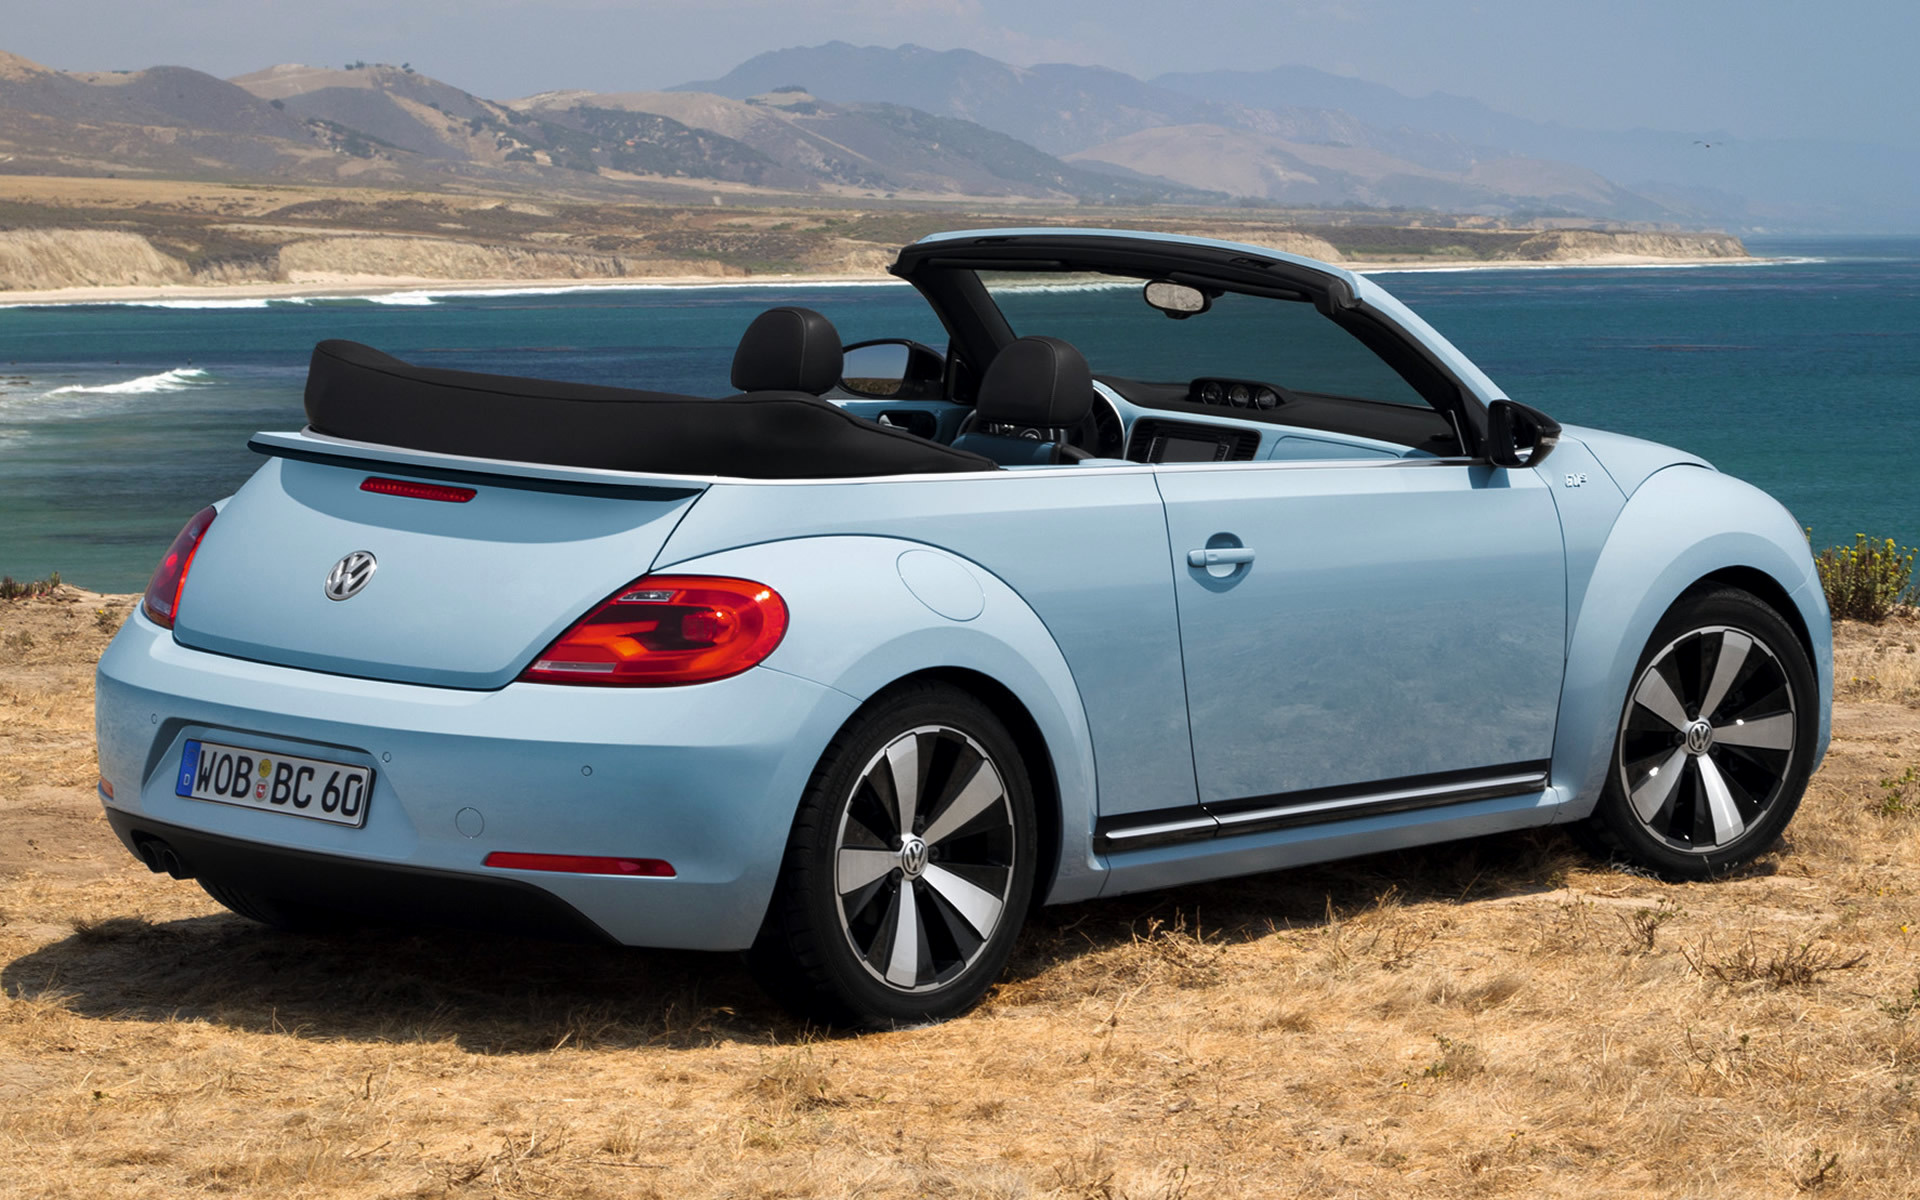 Volkswagen Beetle Cabriolet 60s Edition (2013) Wallpapers and HD Images - Car Pixel